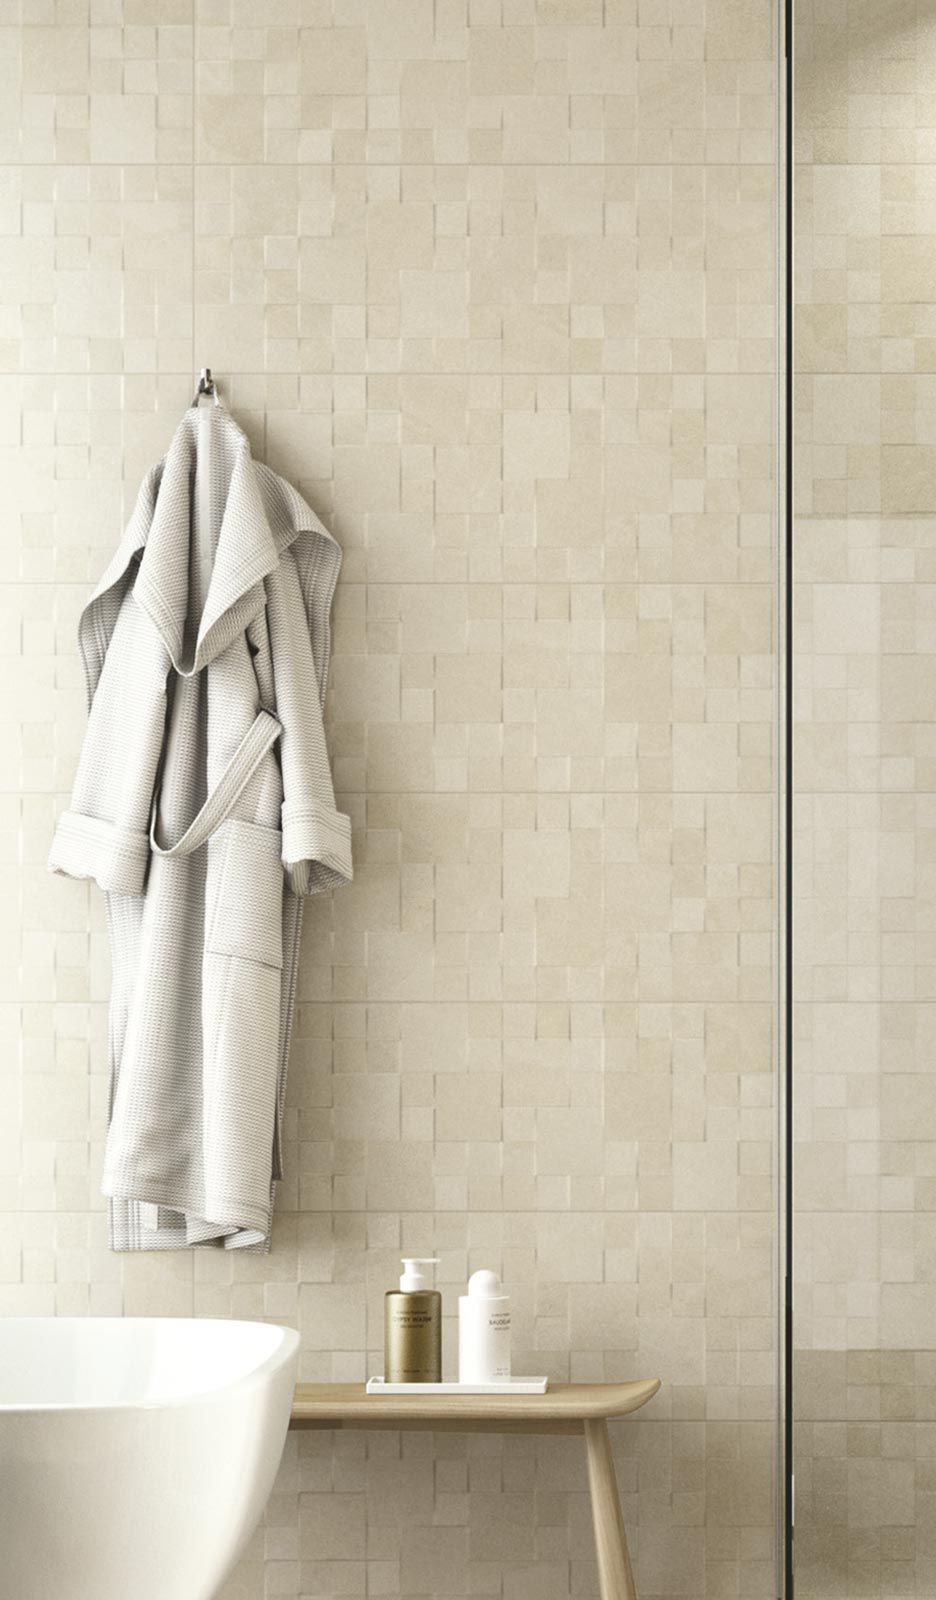 Wall coverings in natural form by Ragno | Bathroom Accessories ...